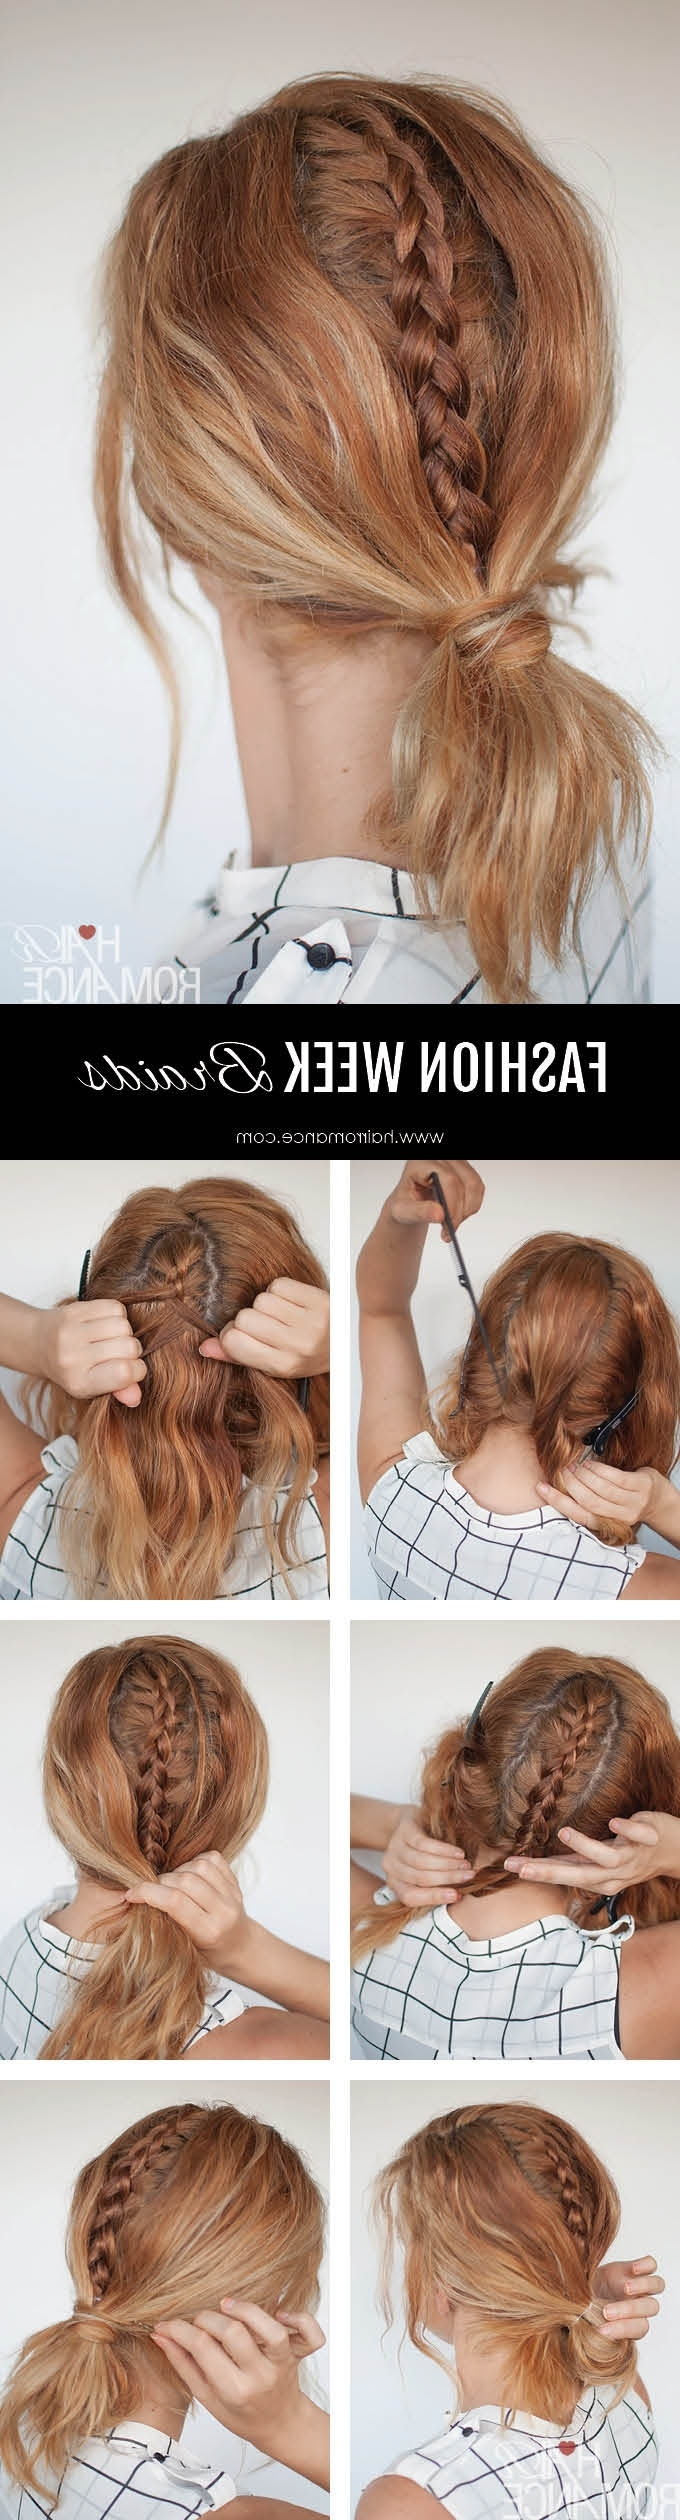 Fashion Week Braids – The Hidden Braid Tutorial You Have To Try In Well Known Hidden Braid Hairstyles (View 8 of 20)